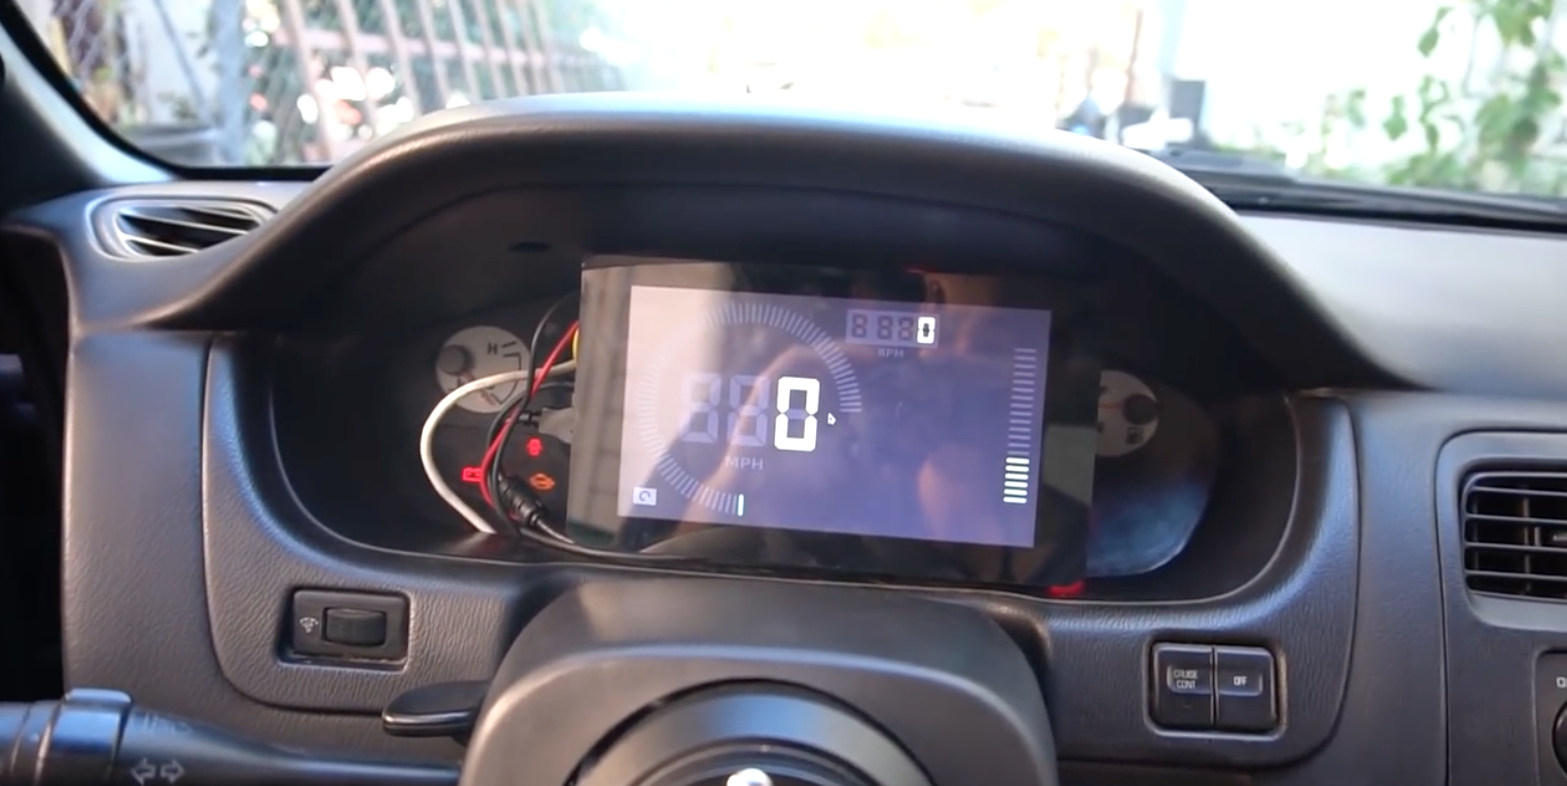 Build a Custom Dashboard for Your Car With Raspberry Pi